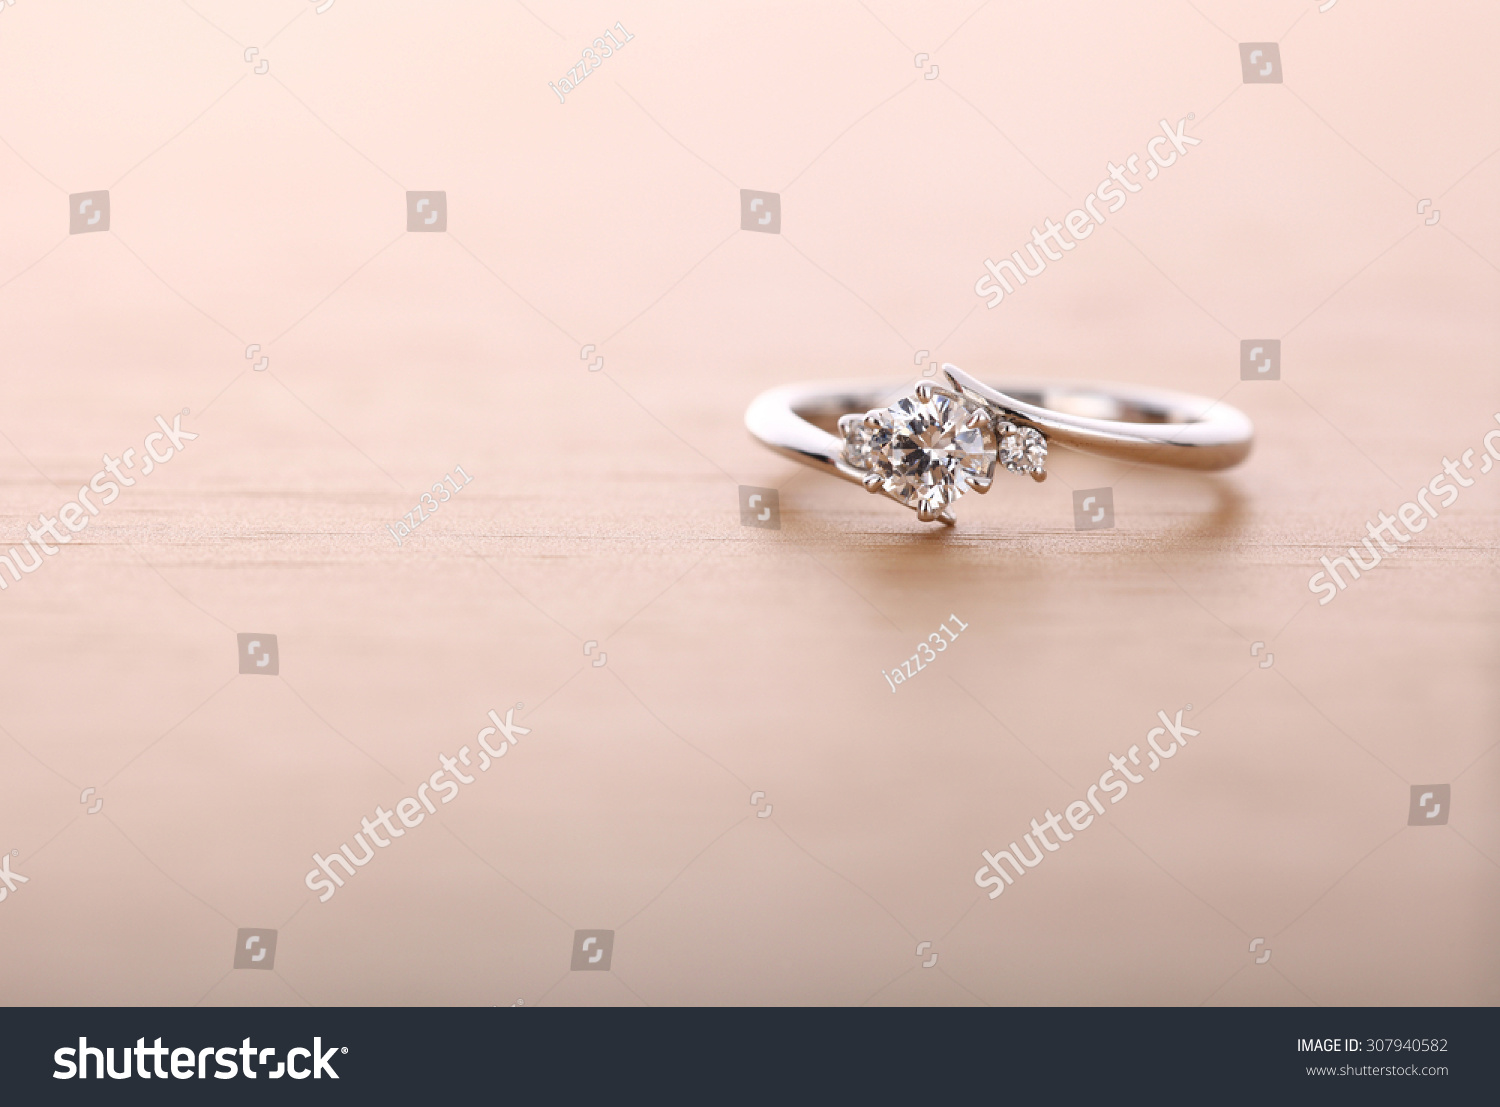 Engagement Ring Stock Photo (Royalty Free) 307940582 - Shutterstock